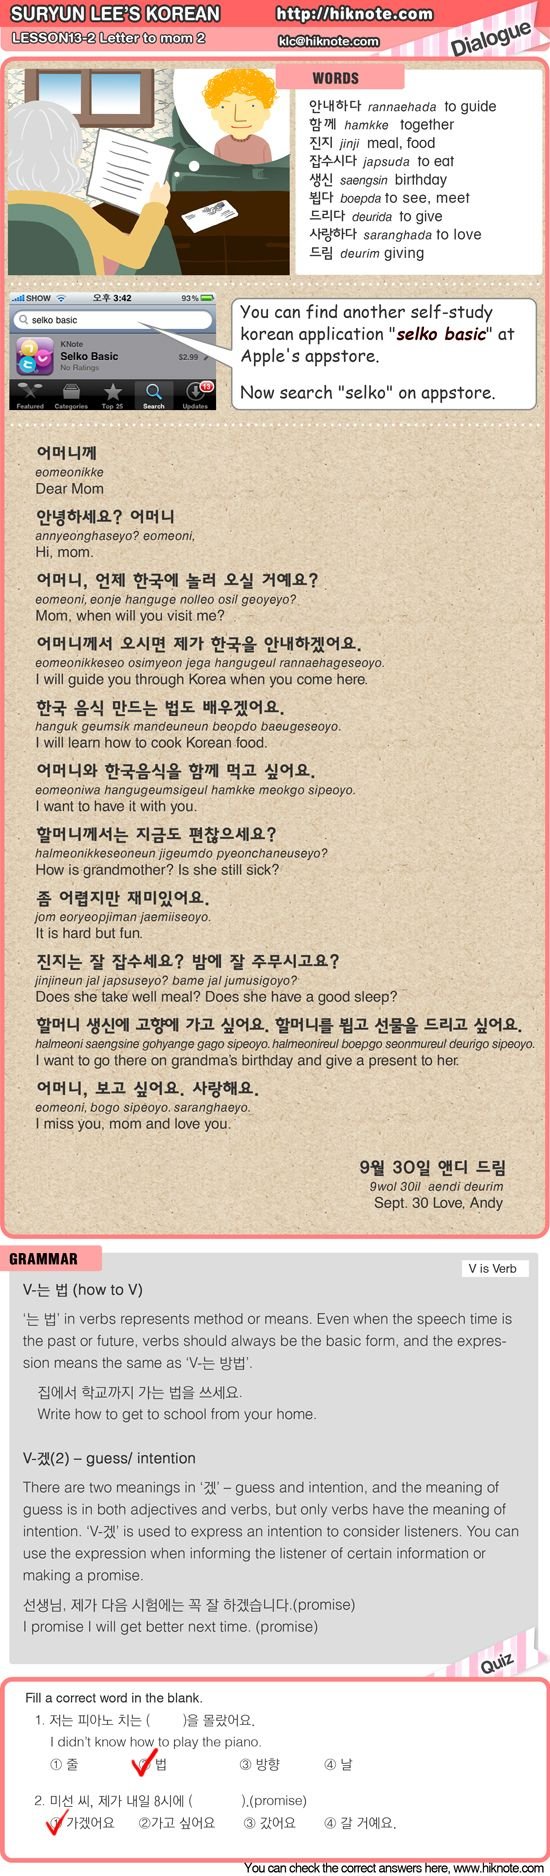 26 13-2 Suryun Lee's Korean Letter to mom 2 - Kind of weird English translations but good practice to read and figure out.